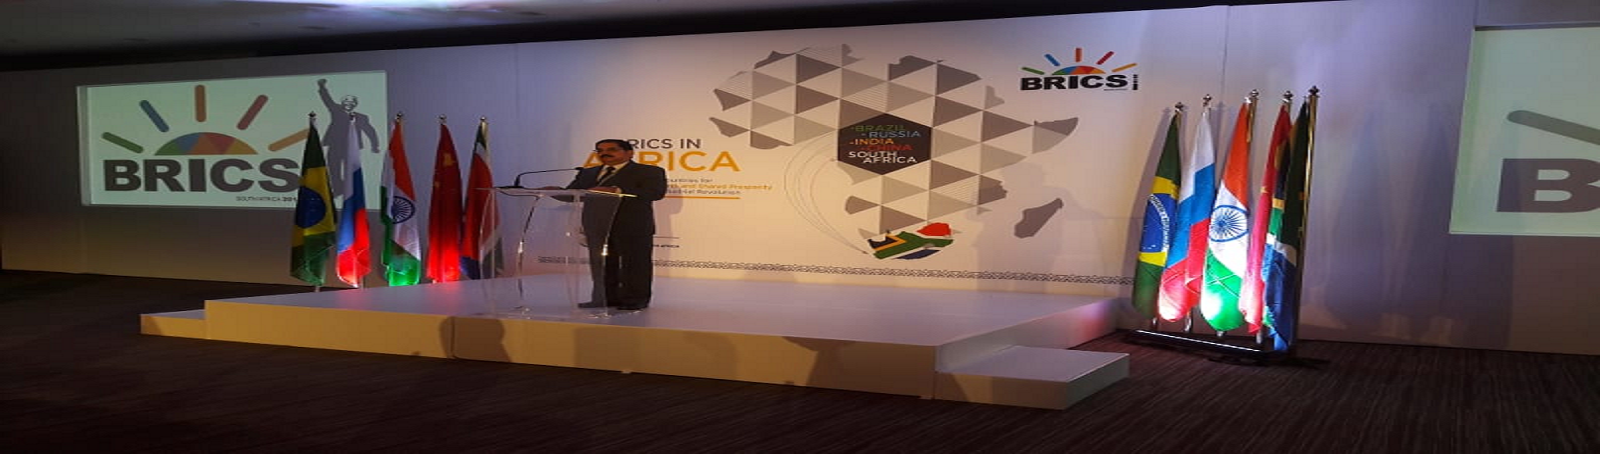 Dr. H Srinivas, Director General, VVGNLI at the BRICS Summit, Durban, South Africa (30th July, 2018 – 3rd August, 2018)